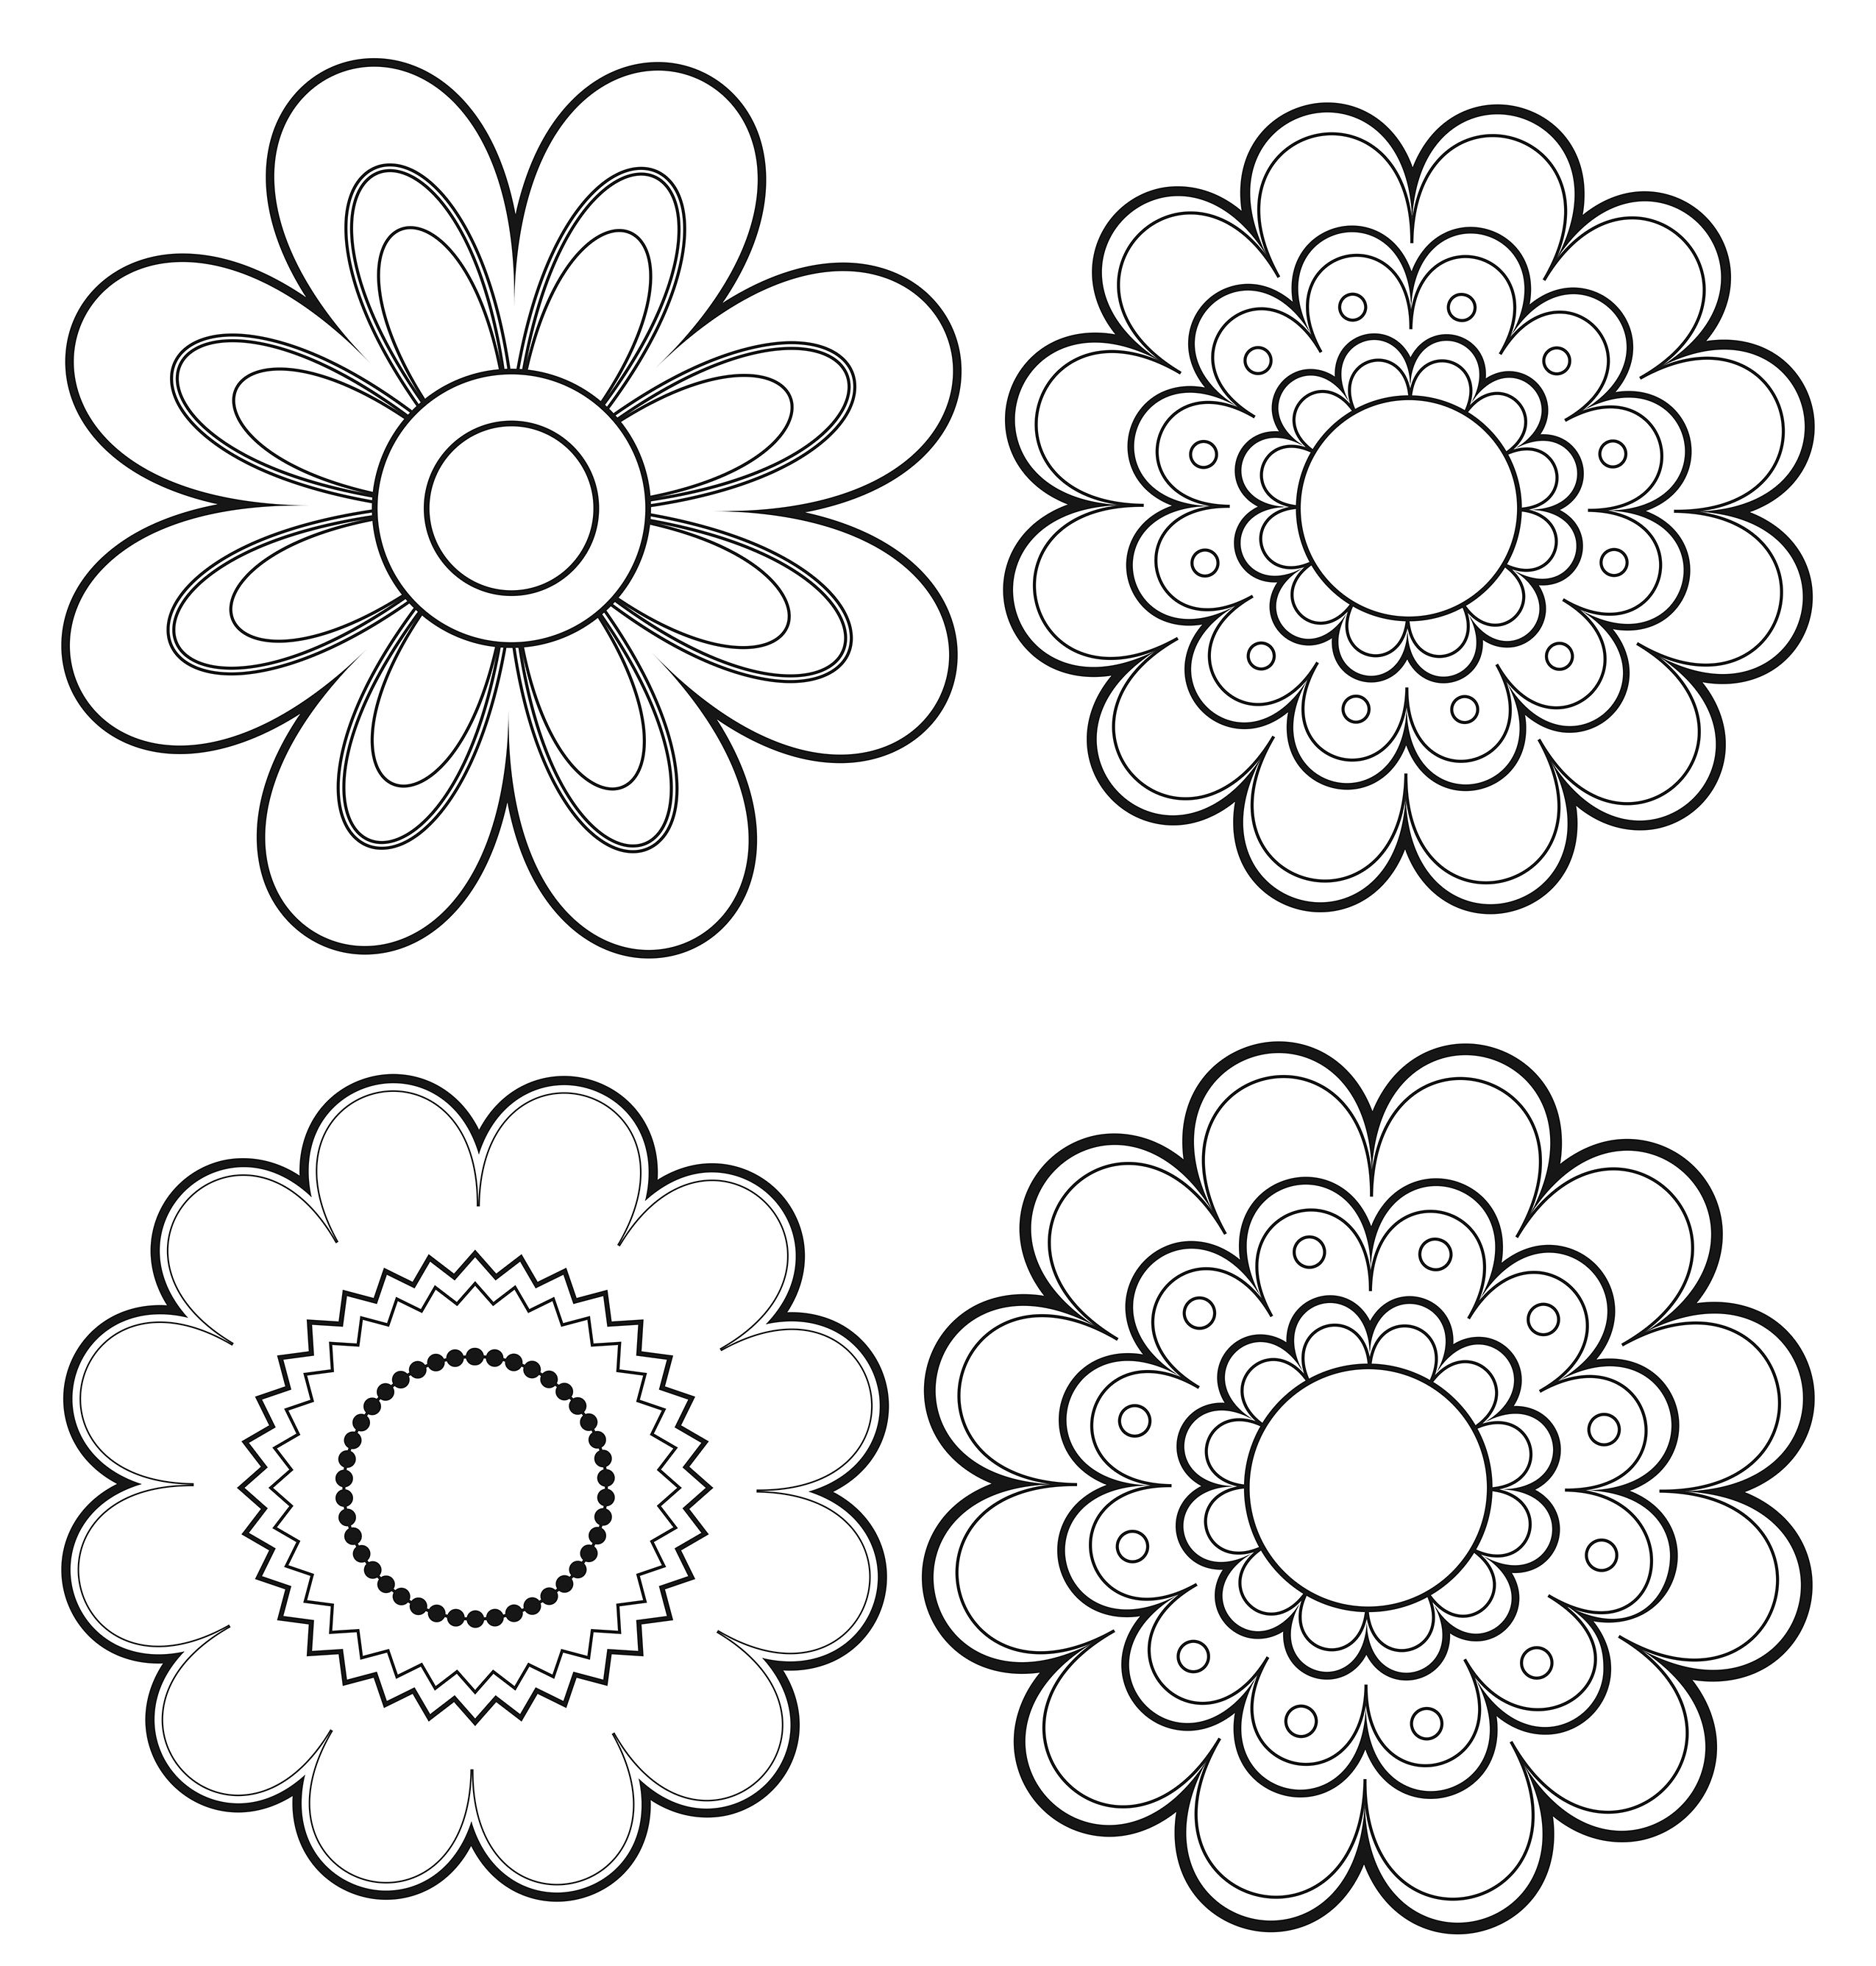 Image Result For Mexican Flowers Clip Art Black And White Mexican Folk Art Painting Mexican Art Mexican Folk Art